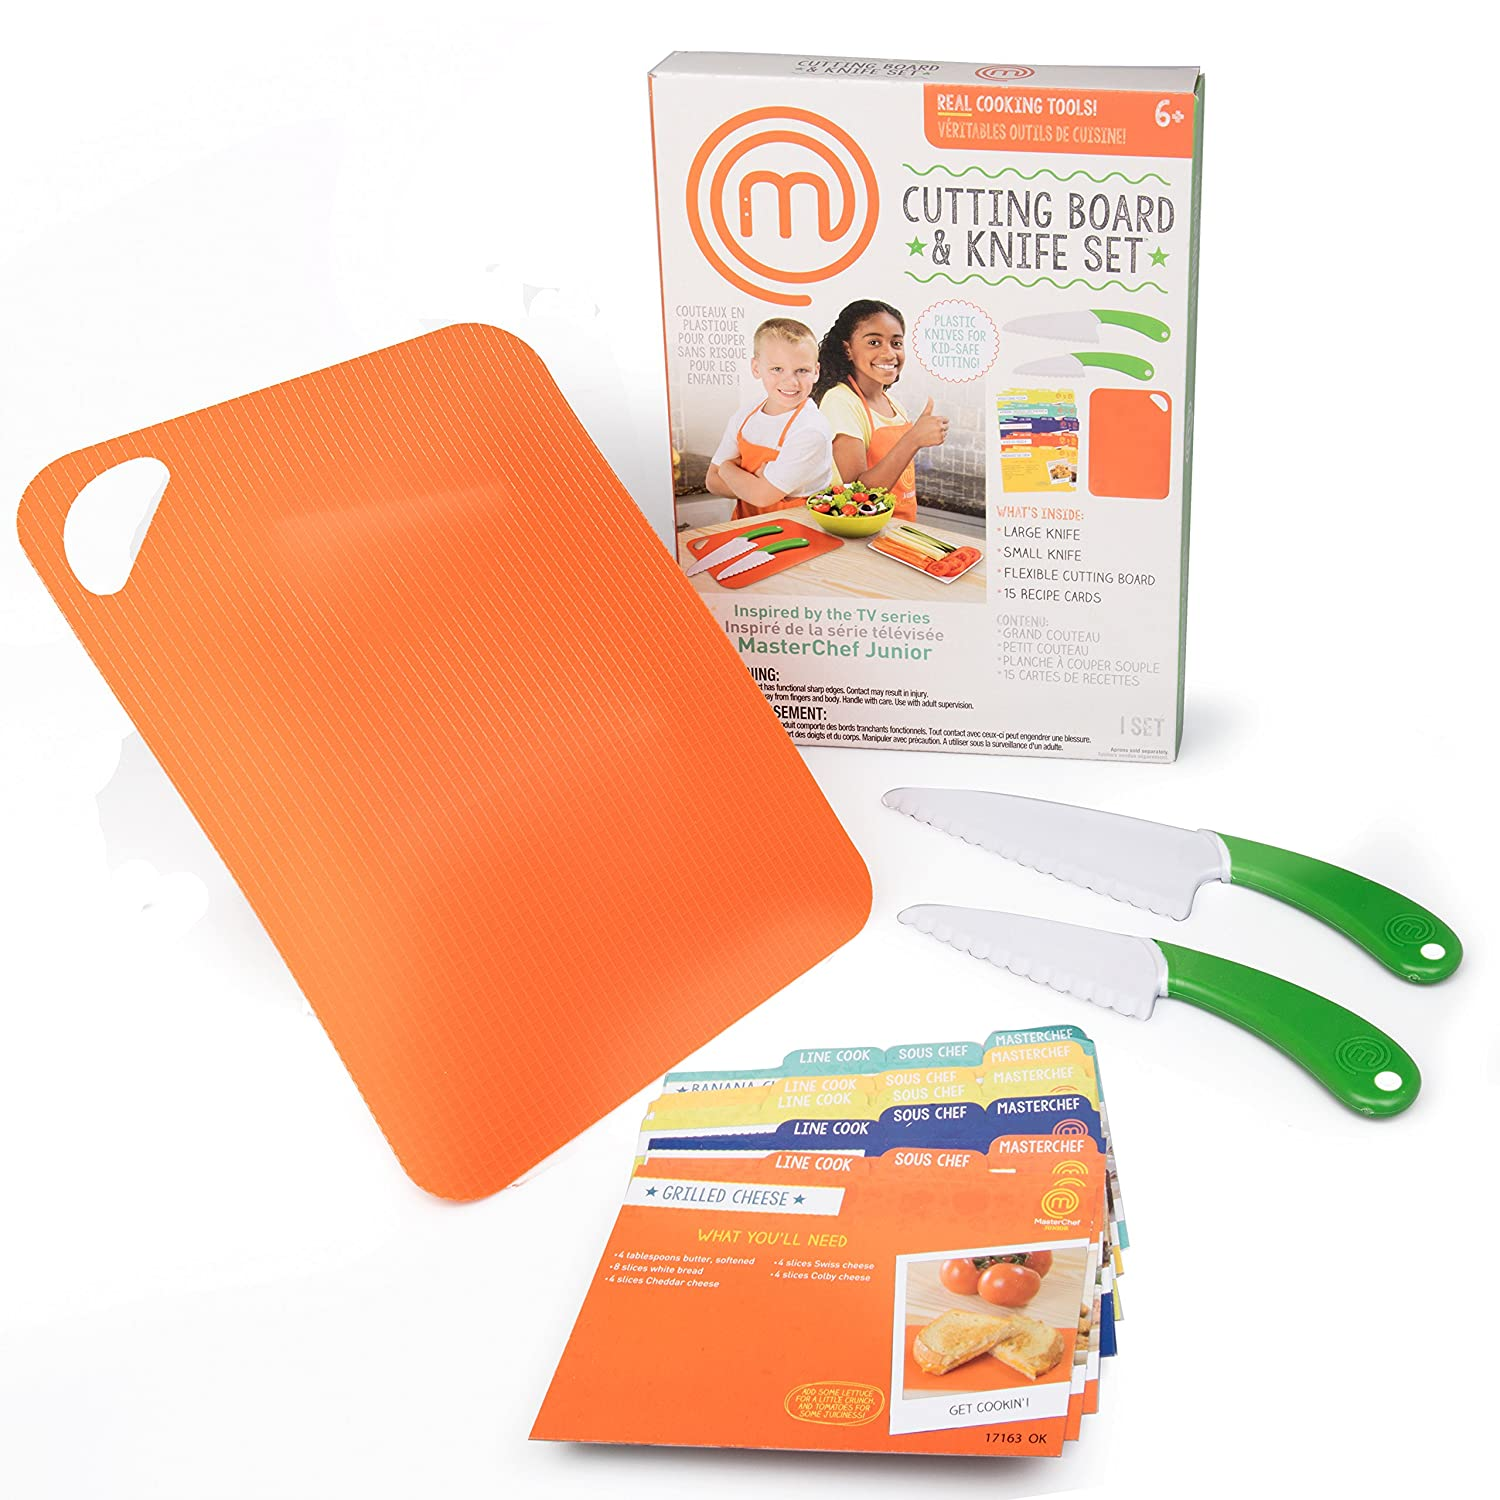 MasterChef Junior Knife and Cutting Board Set - Includes Real Cutting Tools for Kids and 15 Recipes